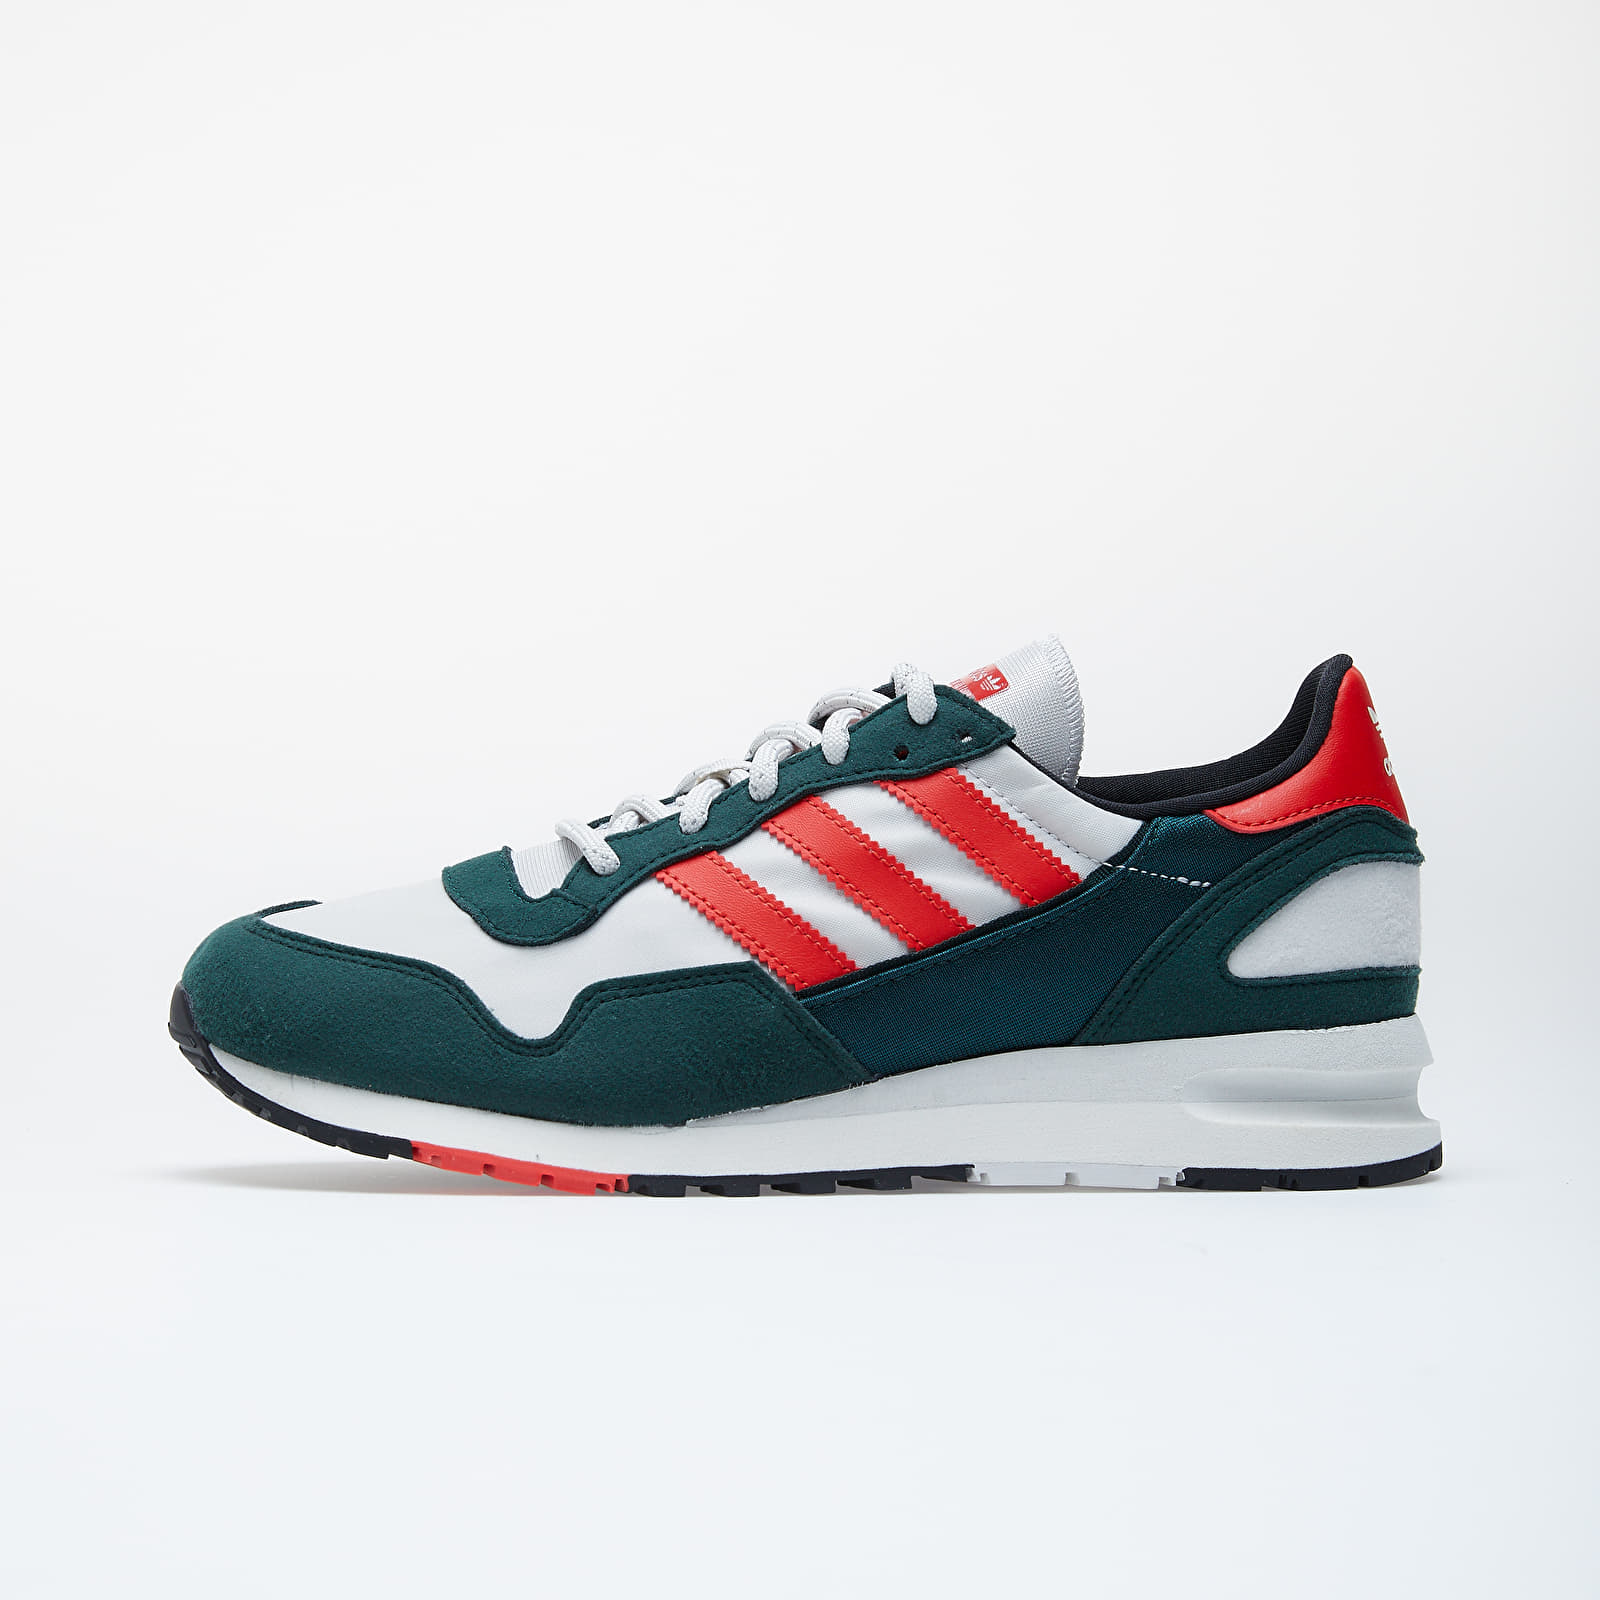 Men's shoes adidas Lowertree Core Green/ Chresl/ Grey One